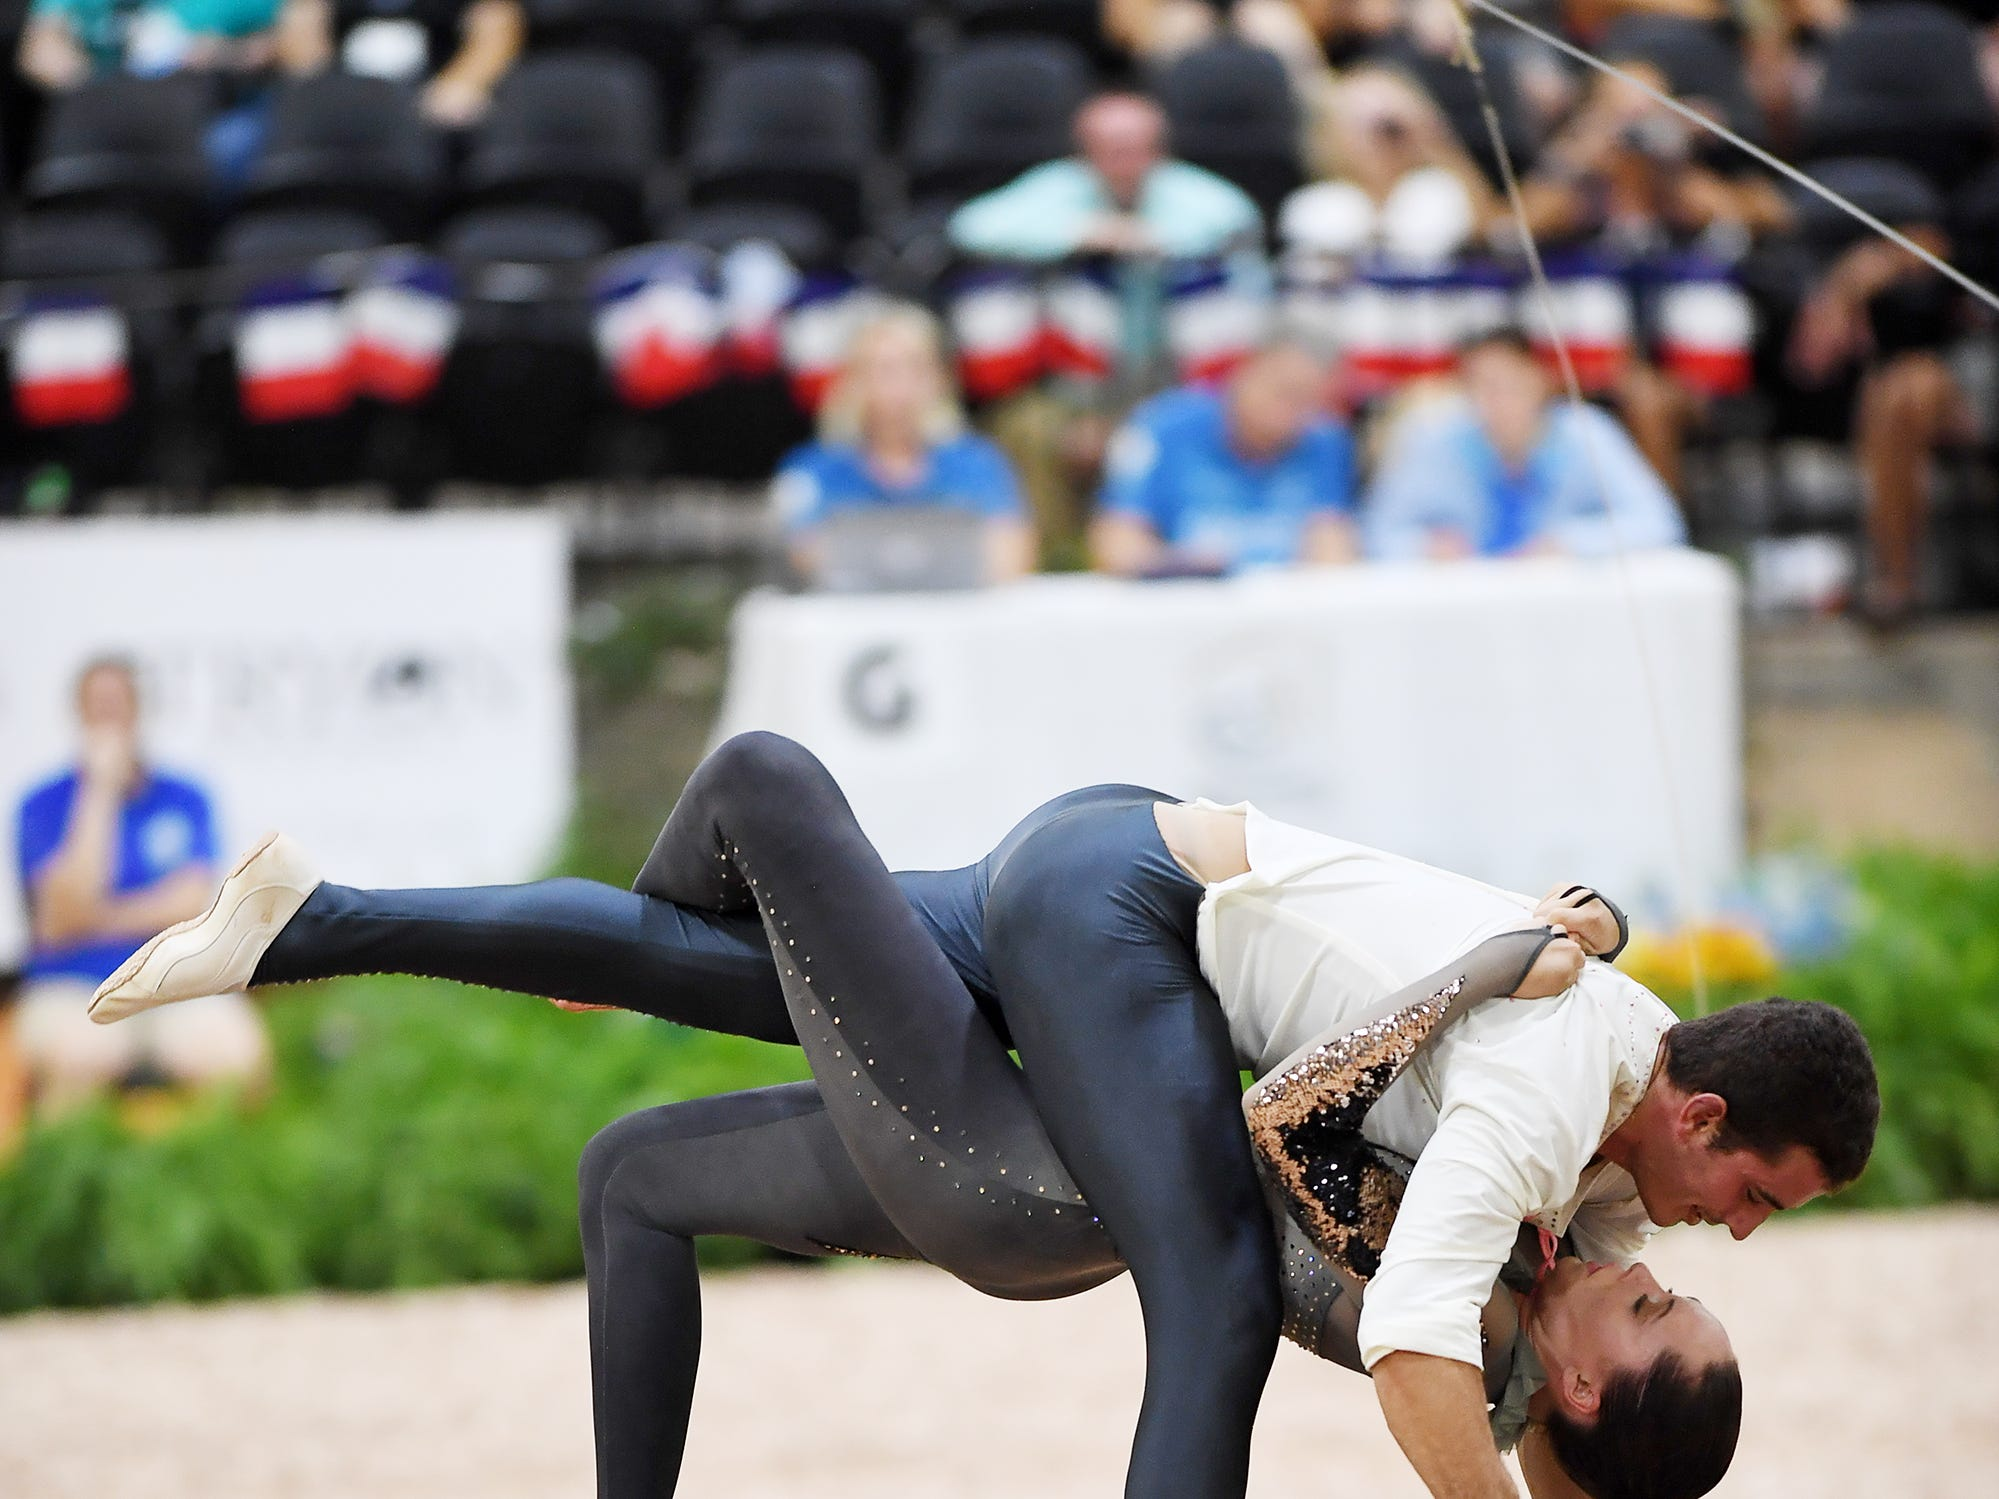 Daniel Janes and Haley Smith compete in the pas de deux vaulting freestyle on Diva 506 at the World Equestrian Games Sept. 19, 2018.